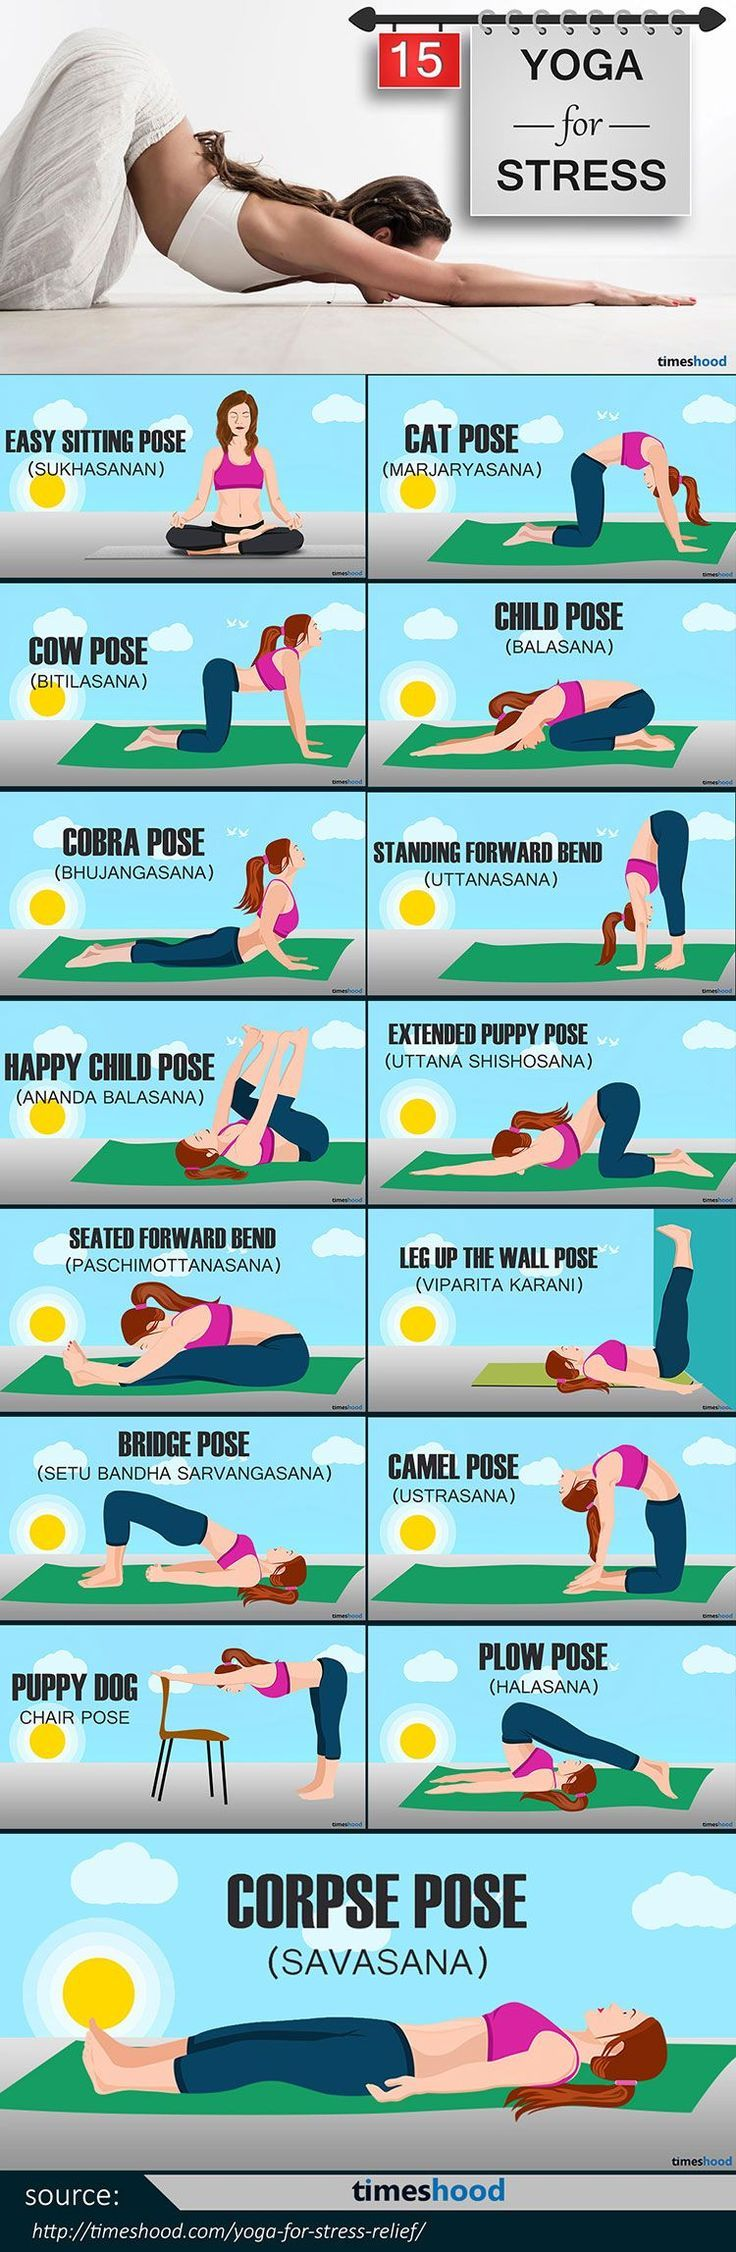 Yoga-for-Stress-Relief-info-1.jpg 750×2,295 pixels Yoga for health, yoga for be… – Nataly Galvis Contreras